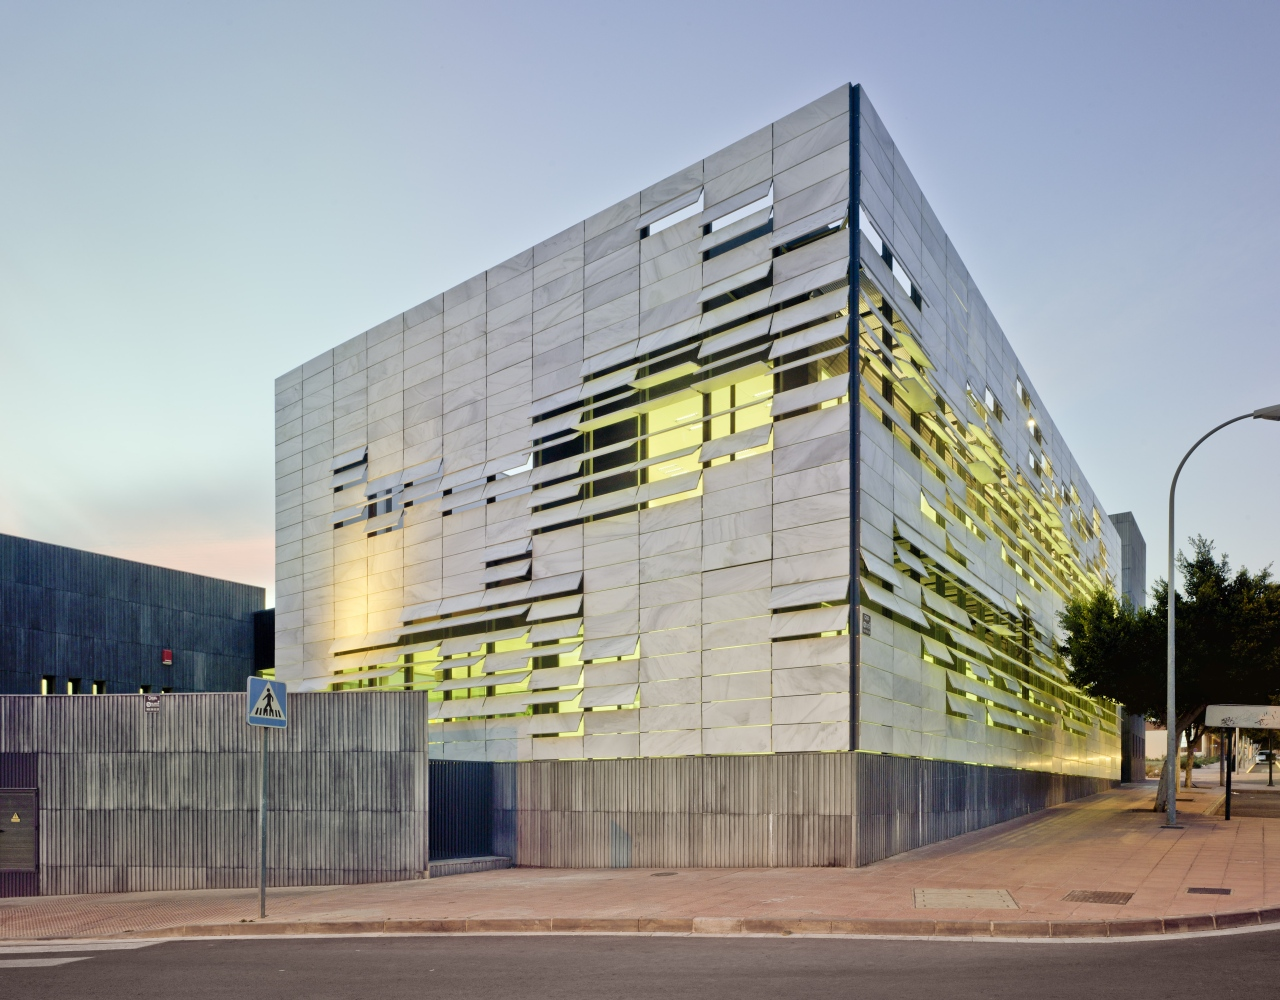 North Mediterranean Health Center / Ferrer Arquitectos, © David Frutos